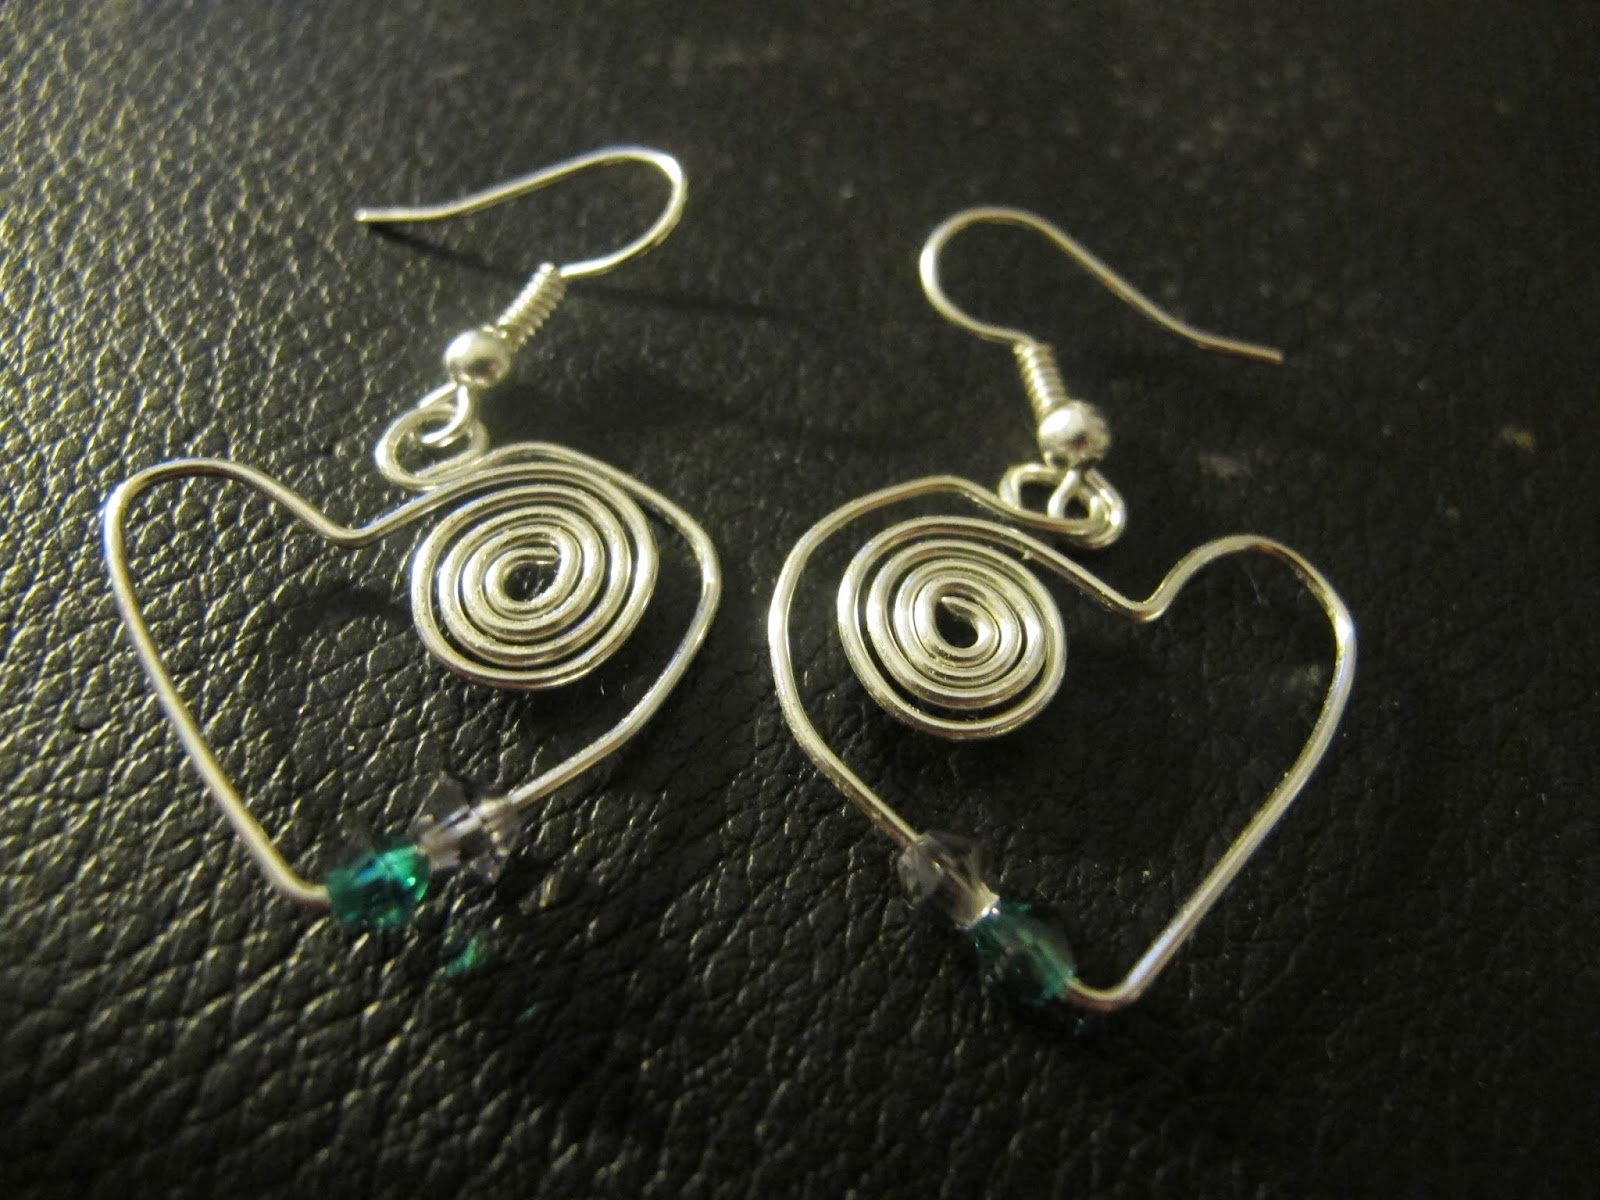 handmade wire jewelry designs s designs handmade wire jewelry new funky wire 4508